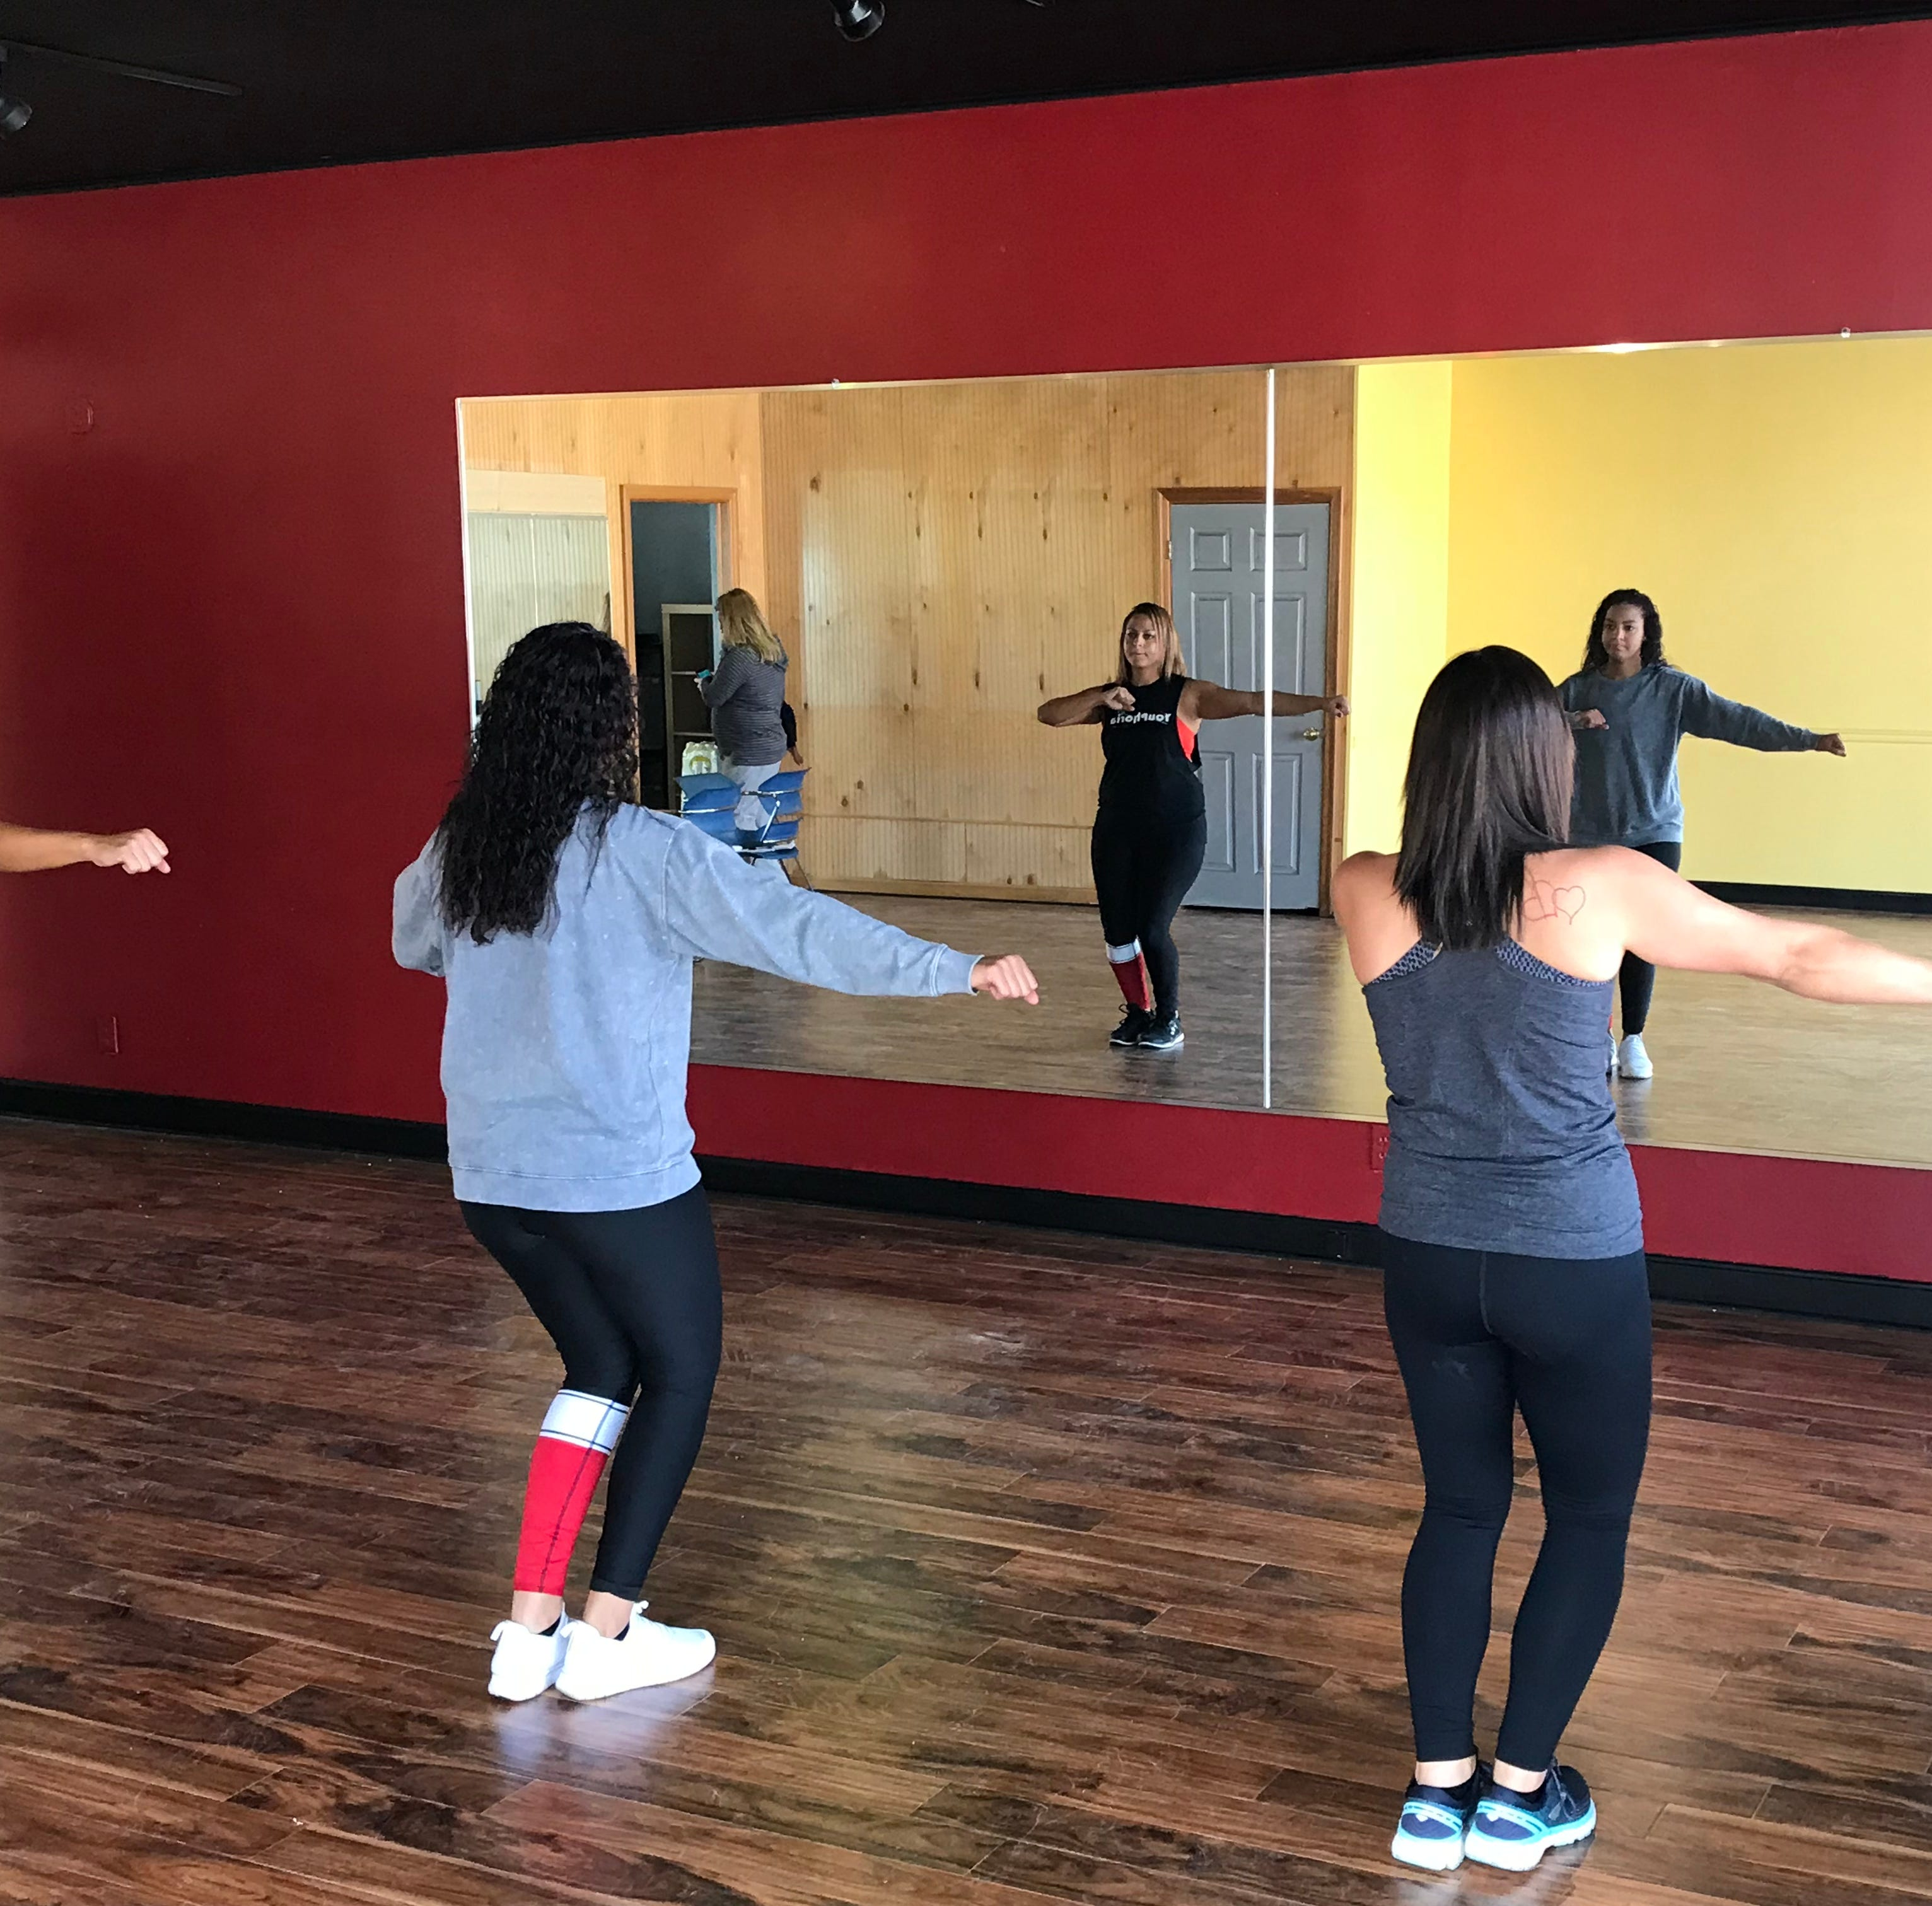 New fitness, dance studio Youphoria Fitness eyes the whole person